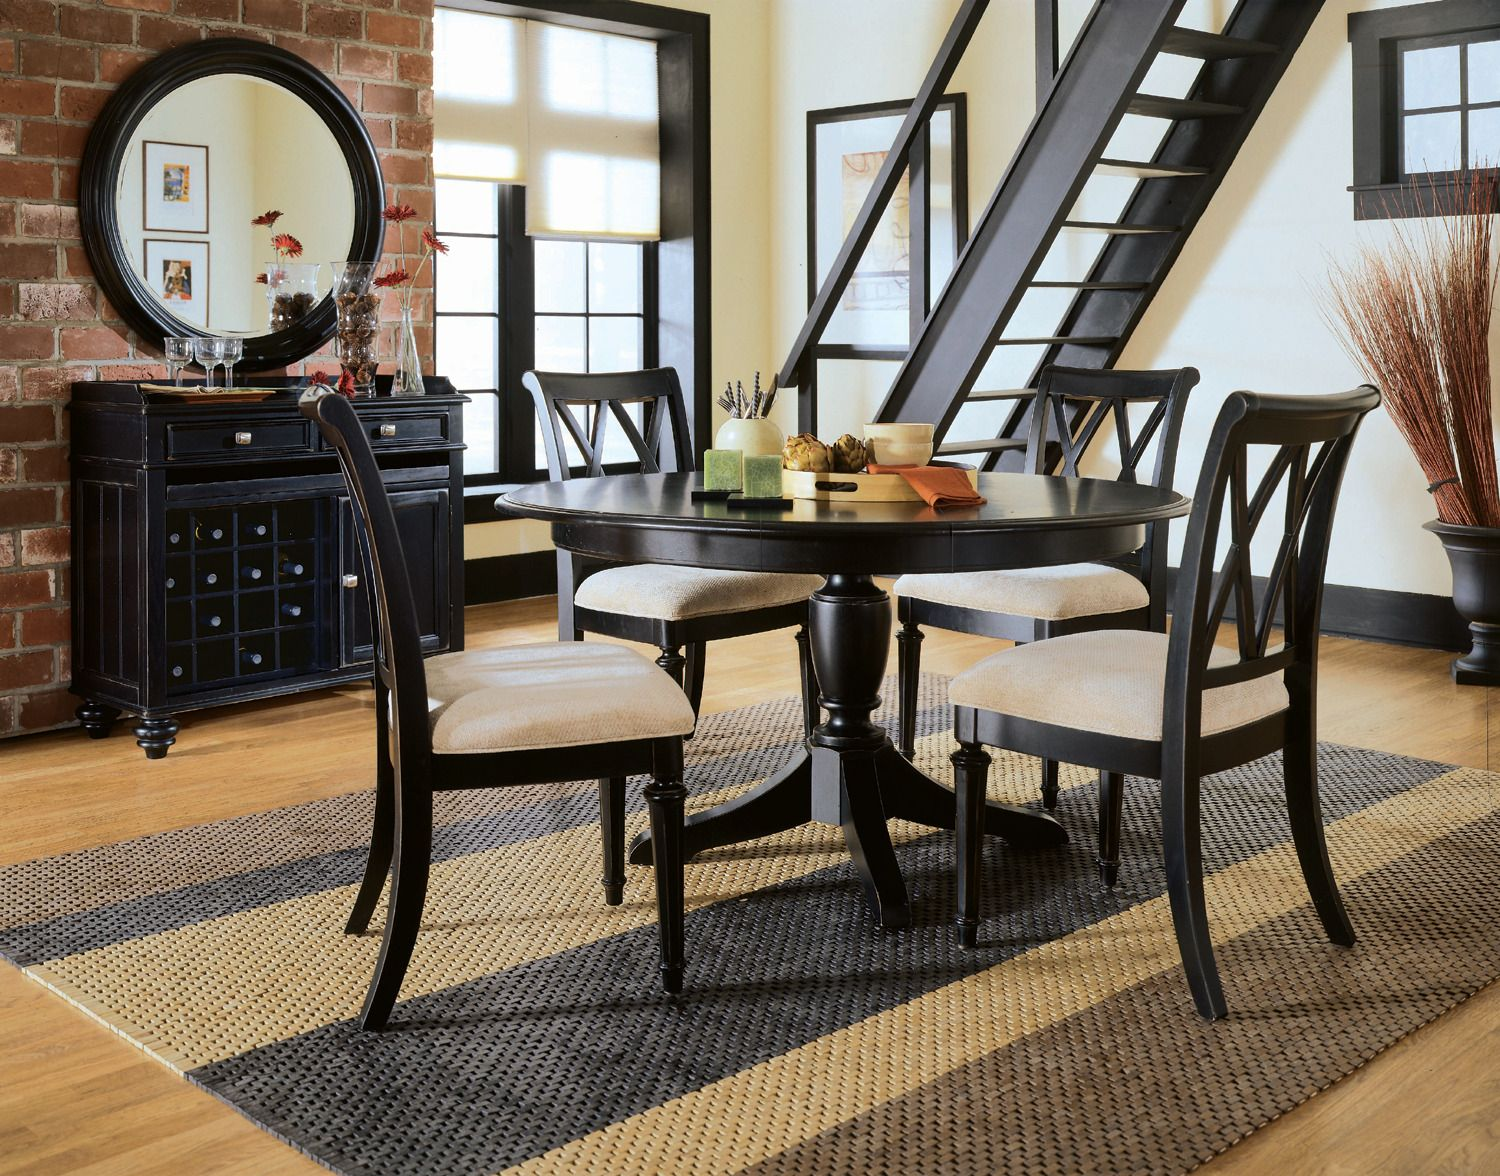 Camden Black RoundOval Dining Table Set by